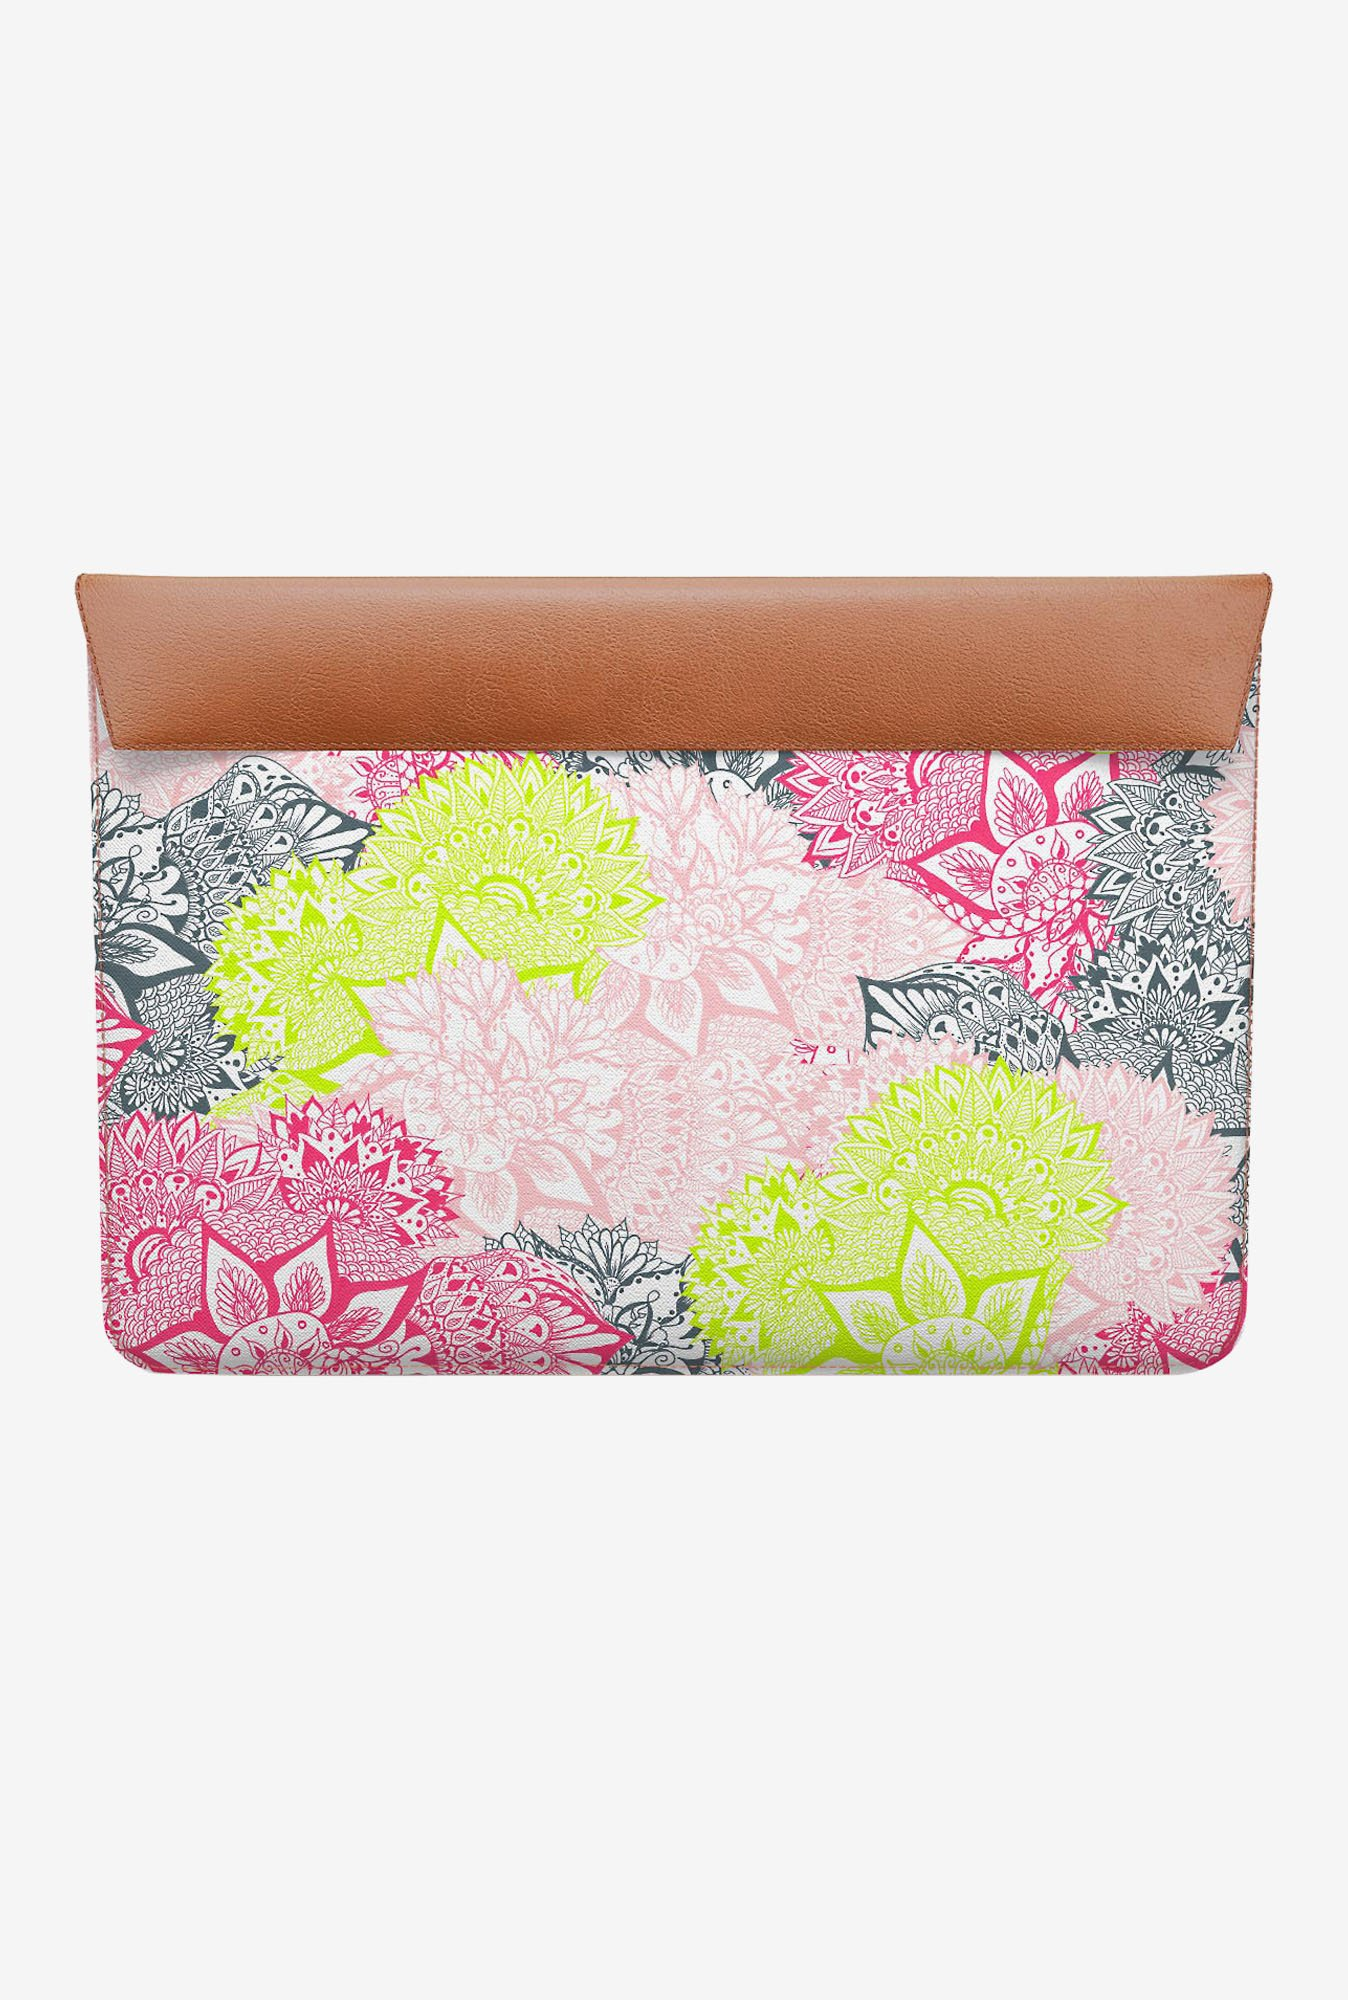 DailyObjects Paisley Pattern MacBook Pro 13 Envelope Sleeve